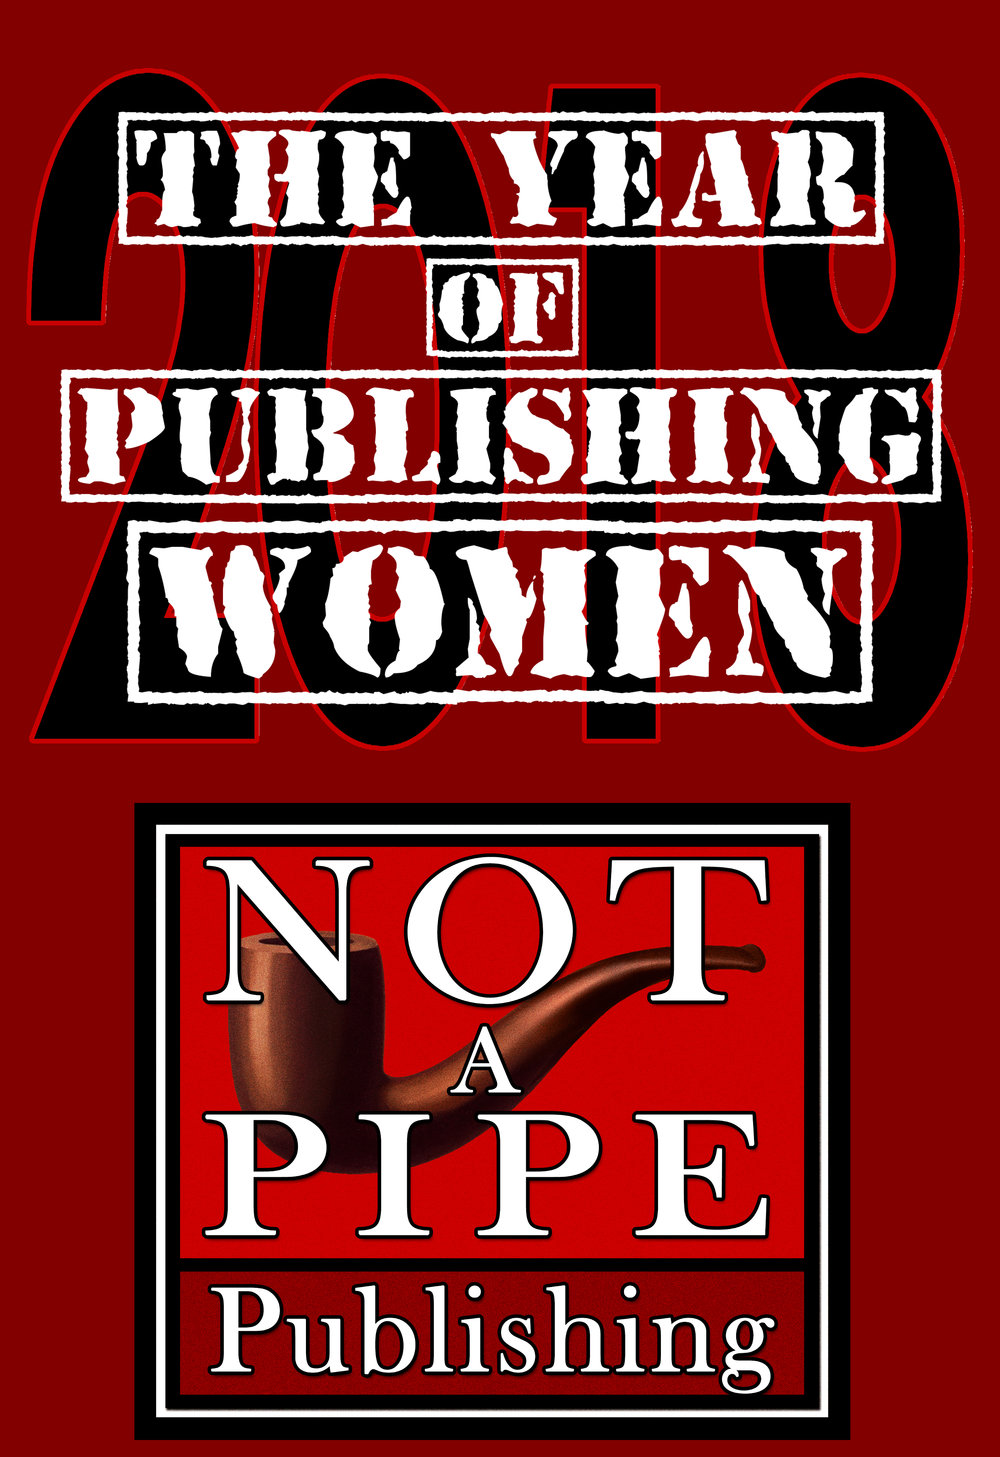 Year of Publishing Women Logo.jpg